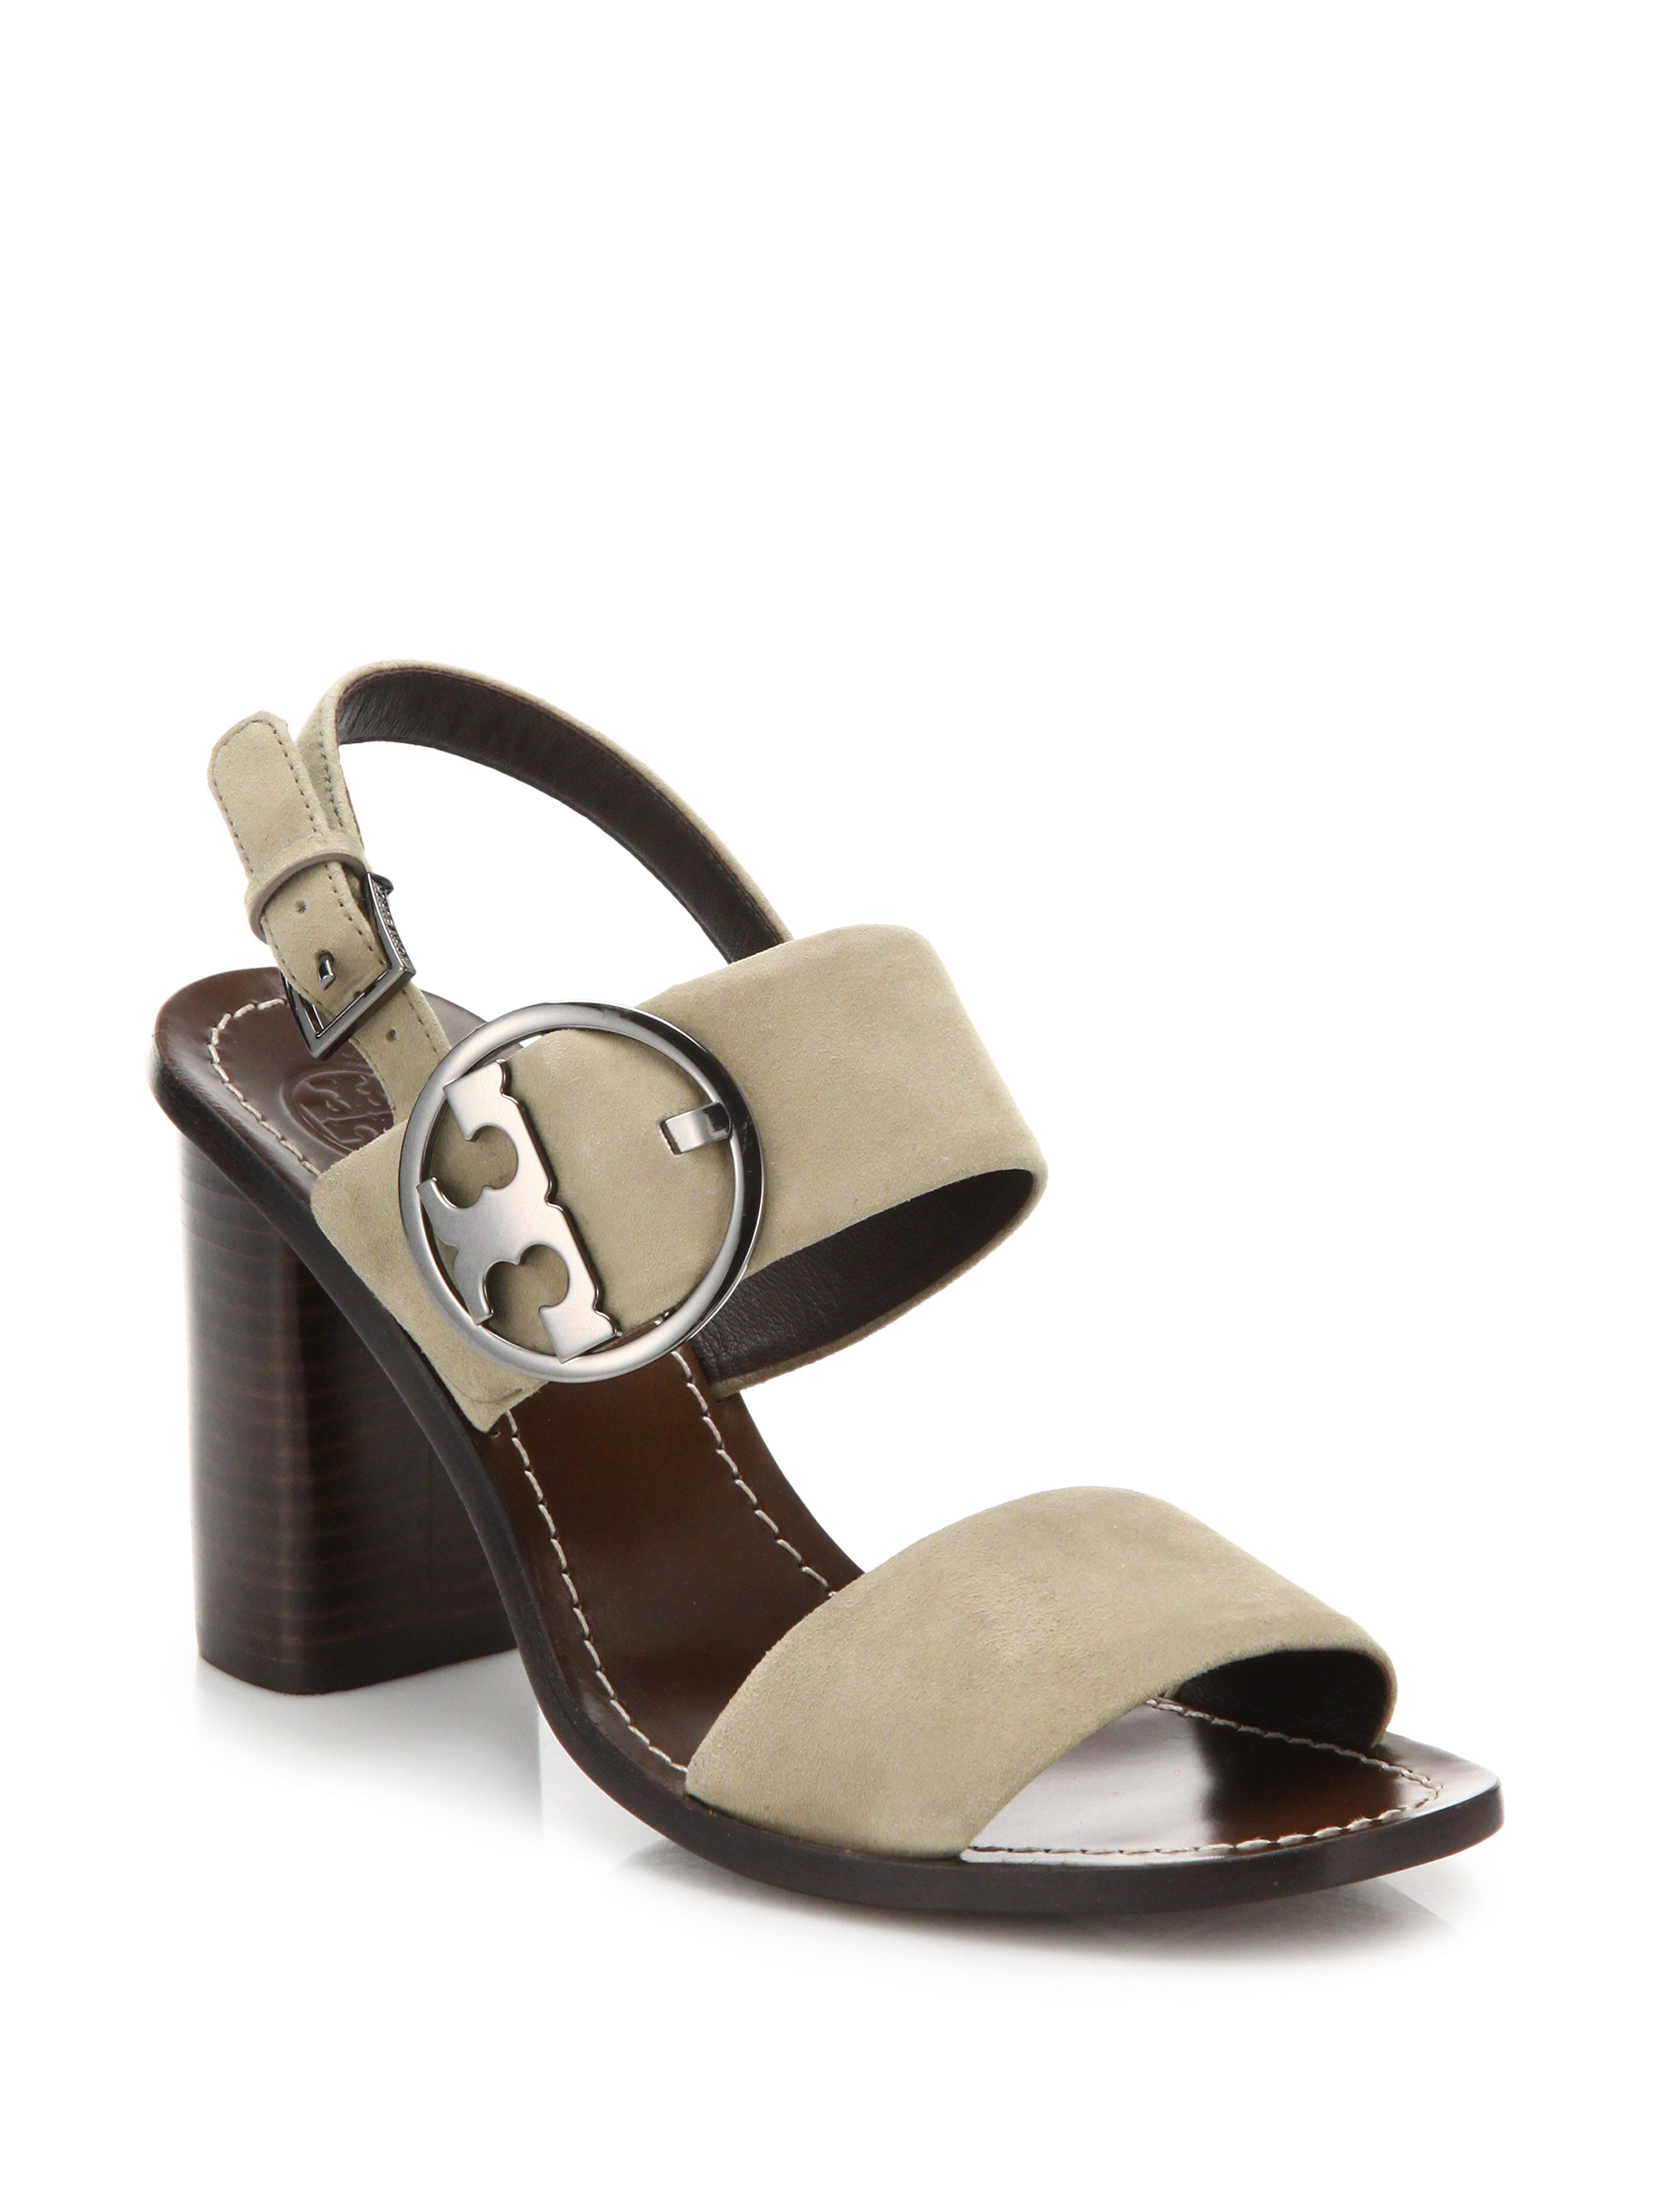 9e97127f4f12ba Lyst - Tory Burch Thames Suede Slingback Sandals in Natural